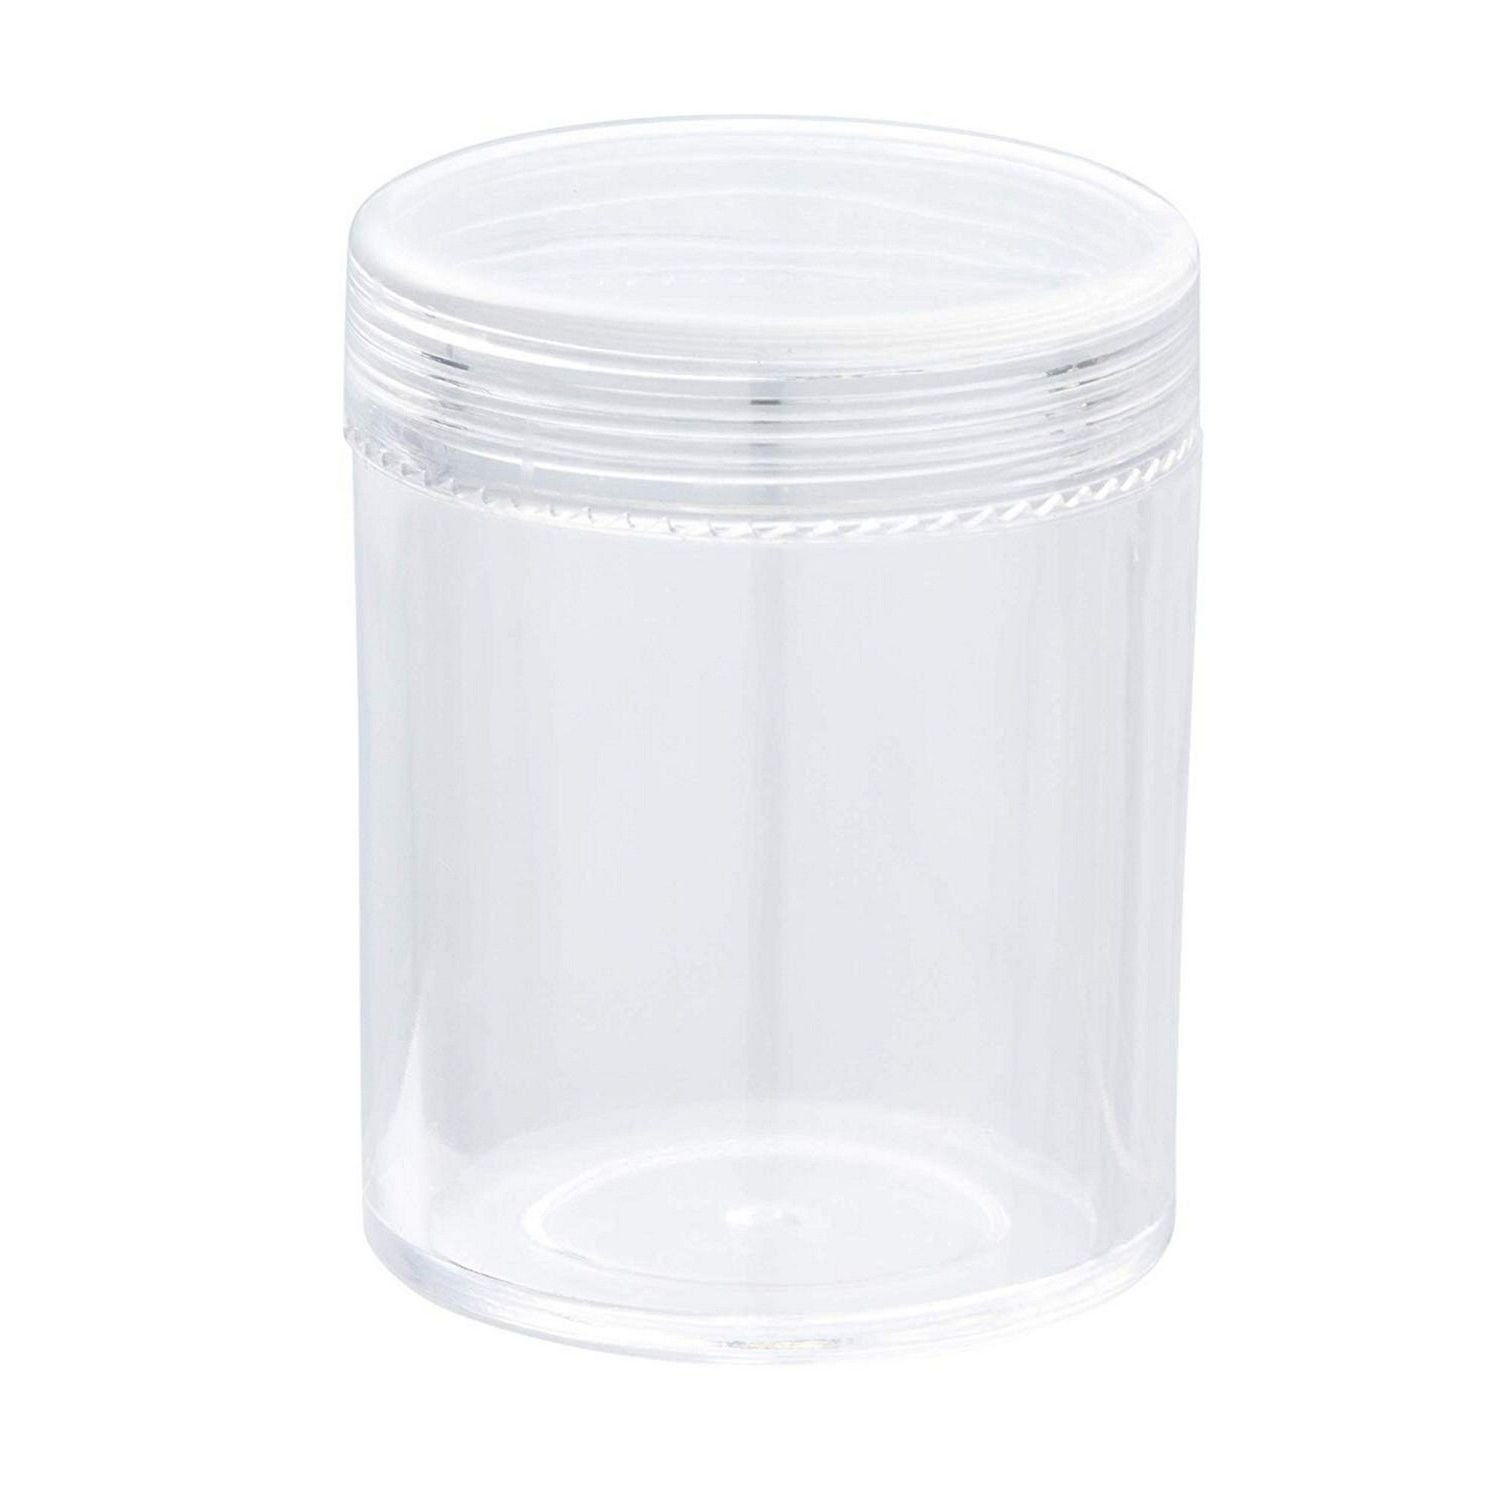 Spice Containers Jars Clear Plastic w// Screw Top Lids White Crafts Lot of 9